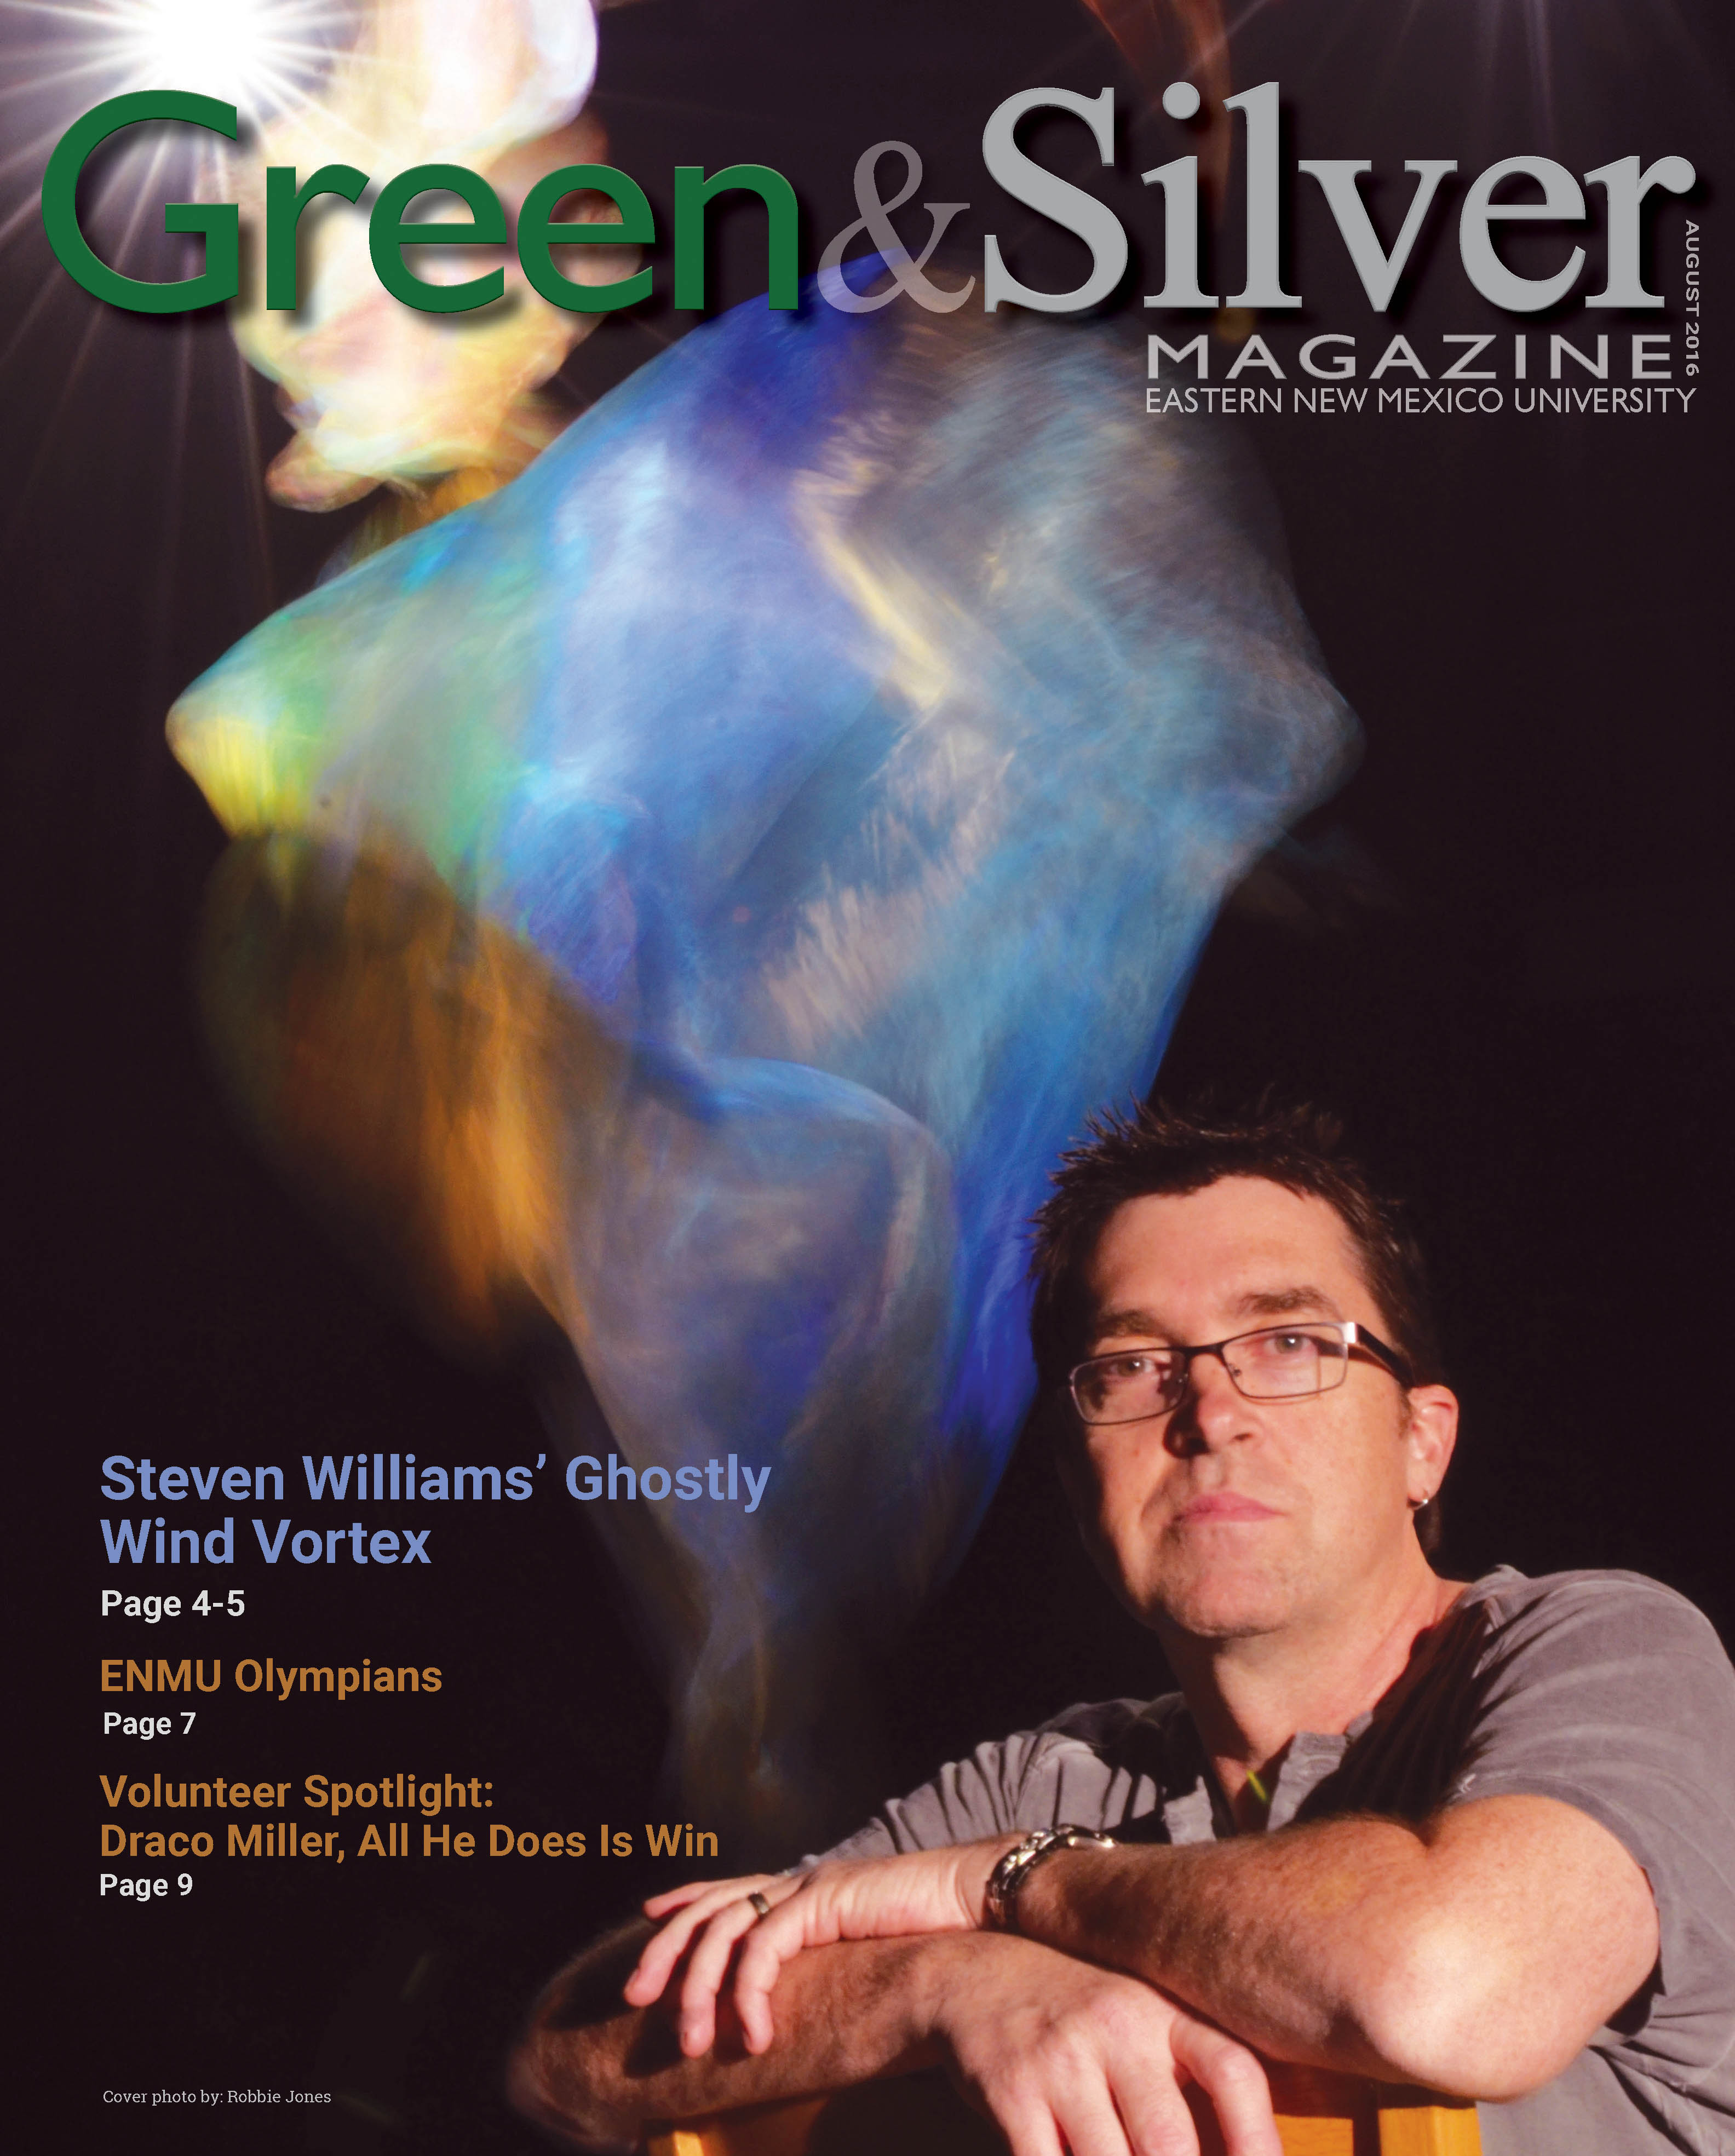 Green & Silver Magazine August 2016 cover